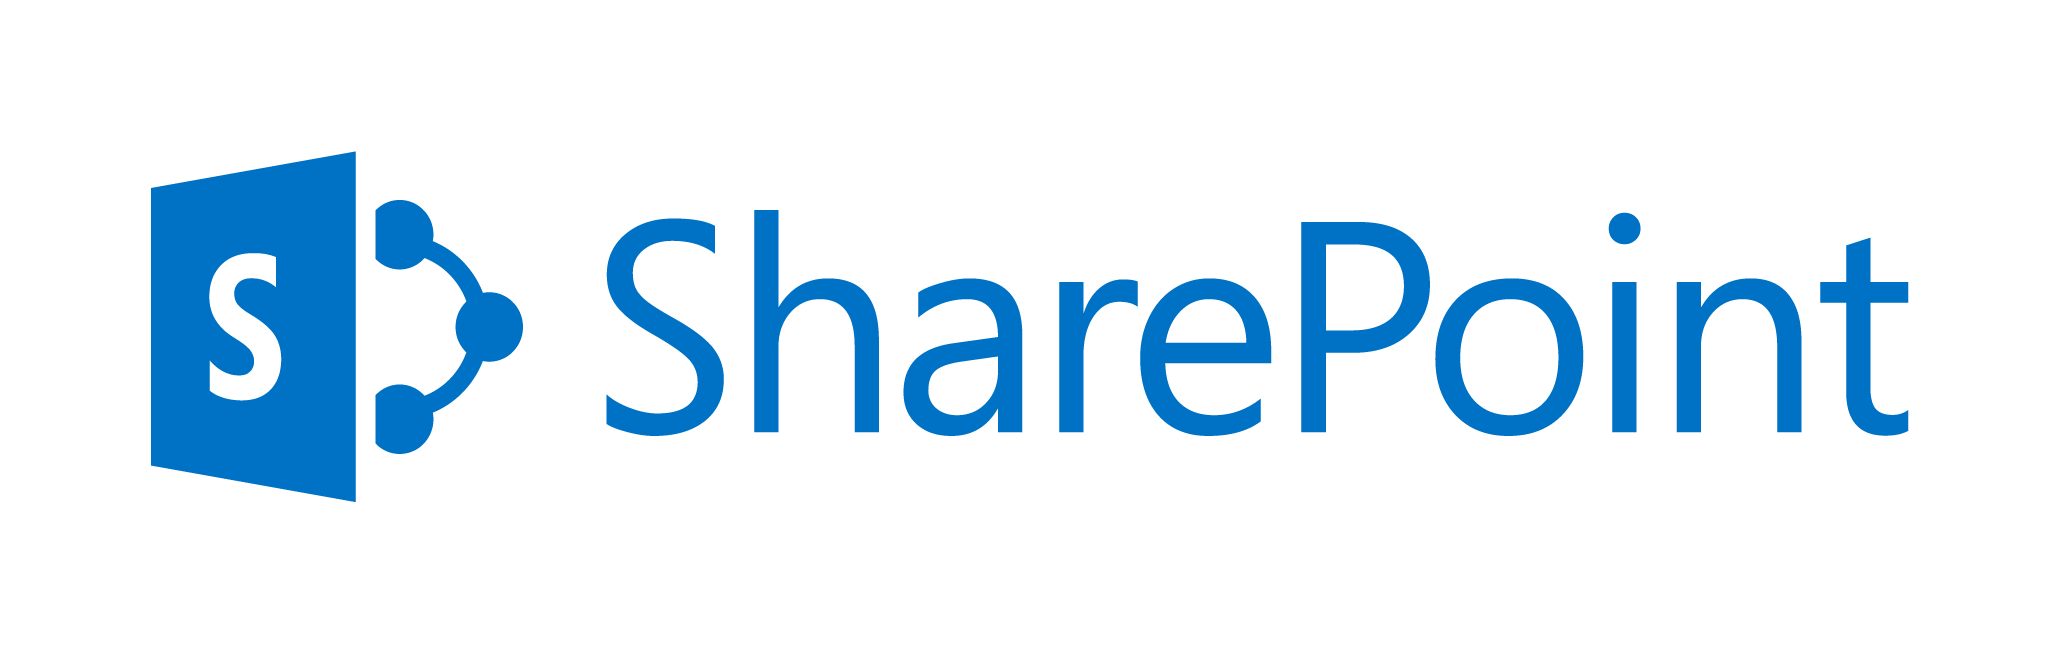 SharePoint2013logo (2).png